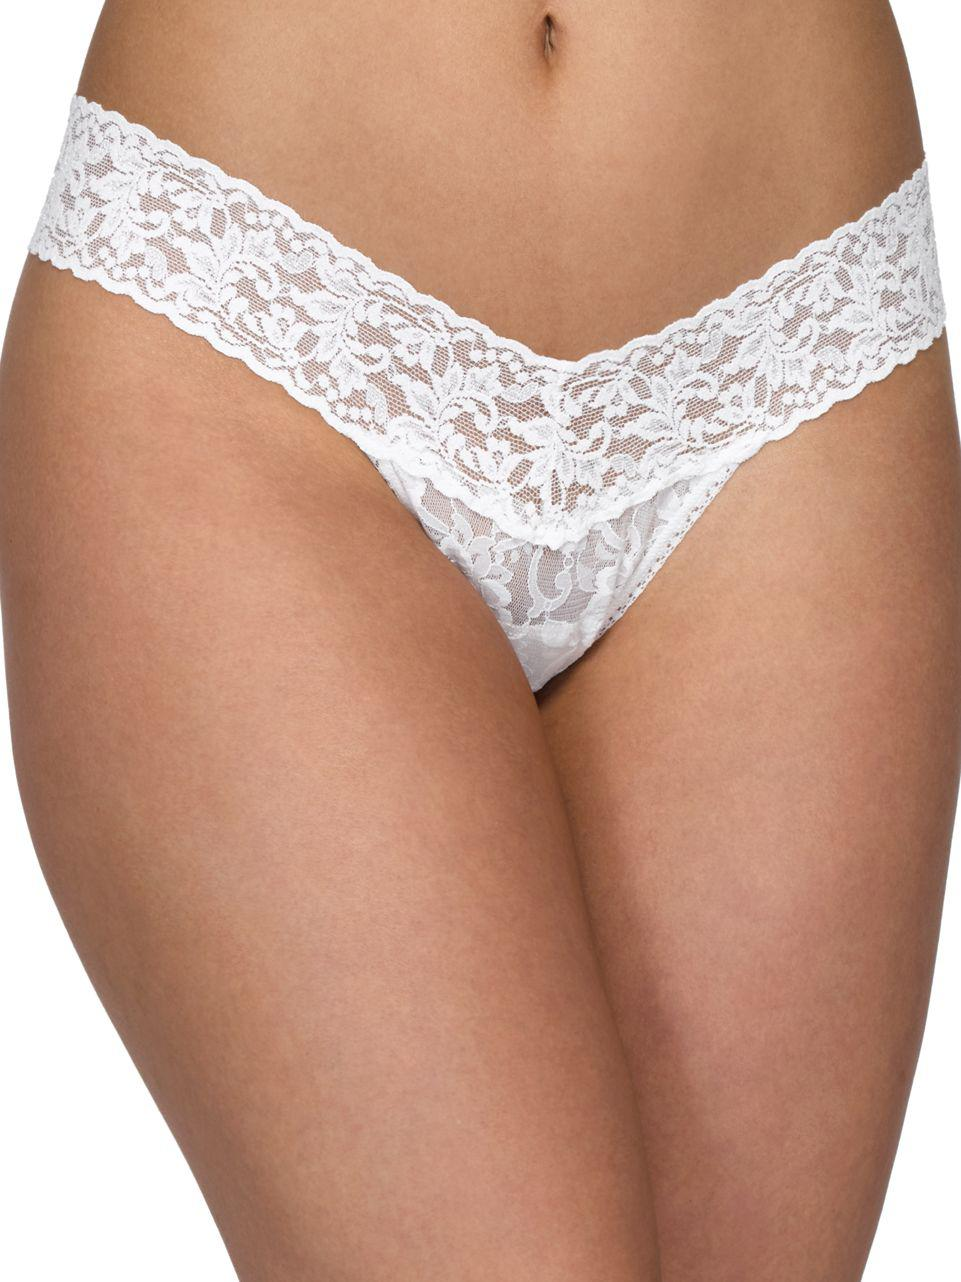 179136a48 Lyst - Hanky Panky Pearl Low-rise Lace Thong in White